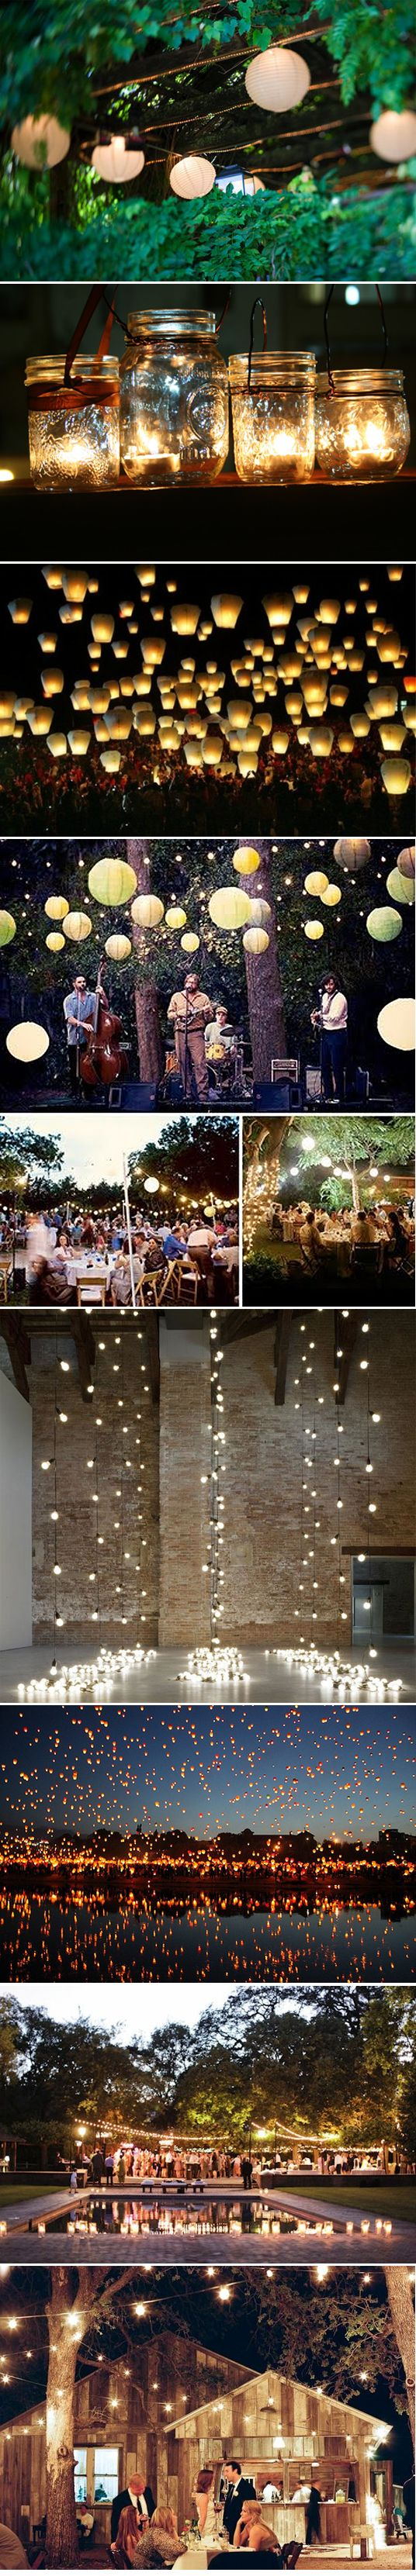 DIY lights and lanterns for outdoors ... ooooooo prettyyy